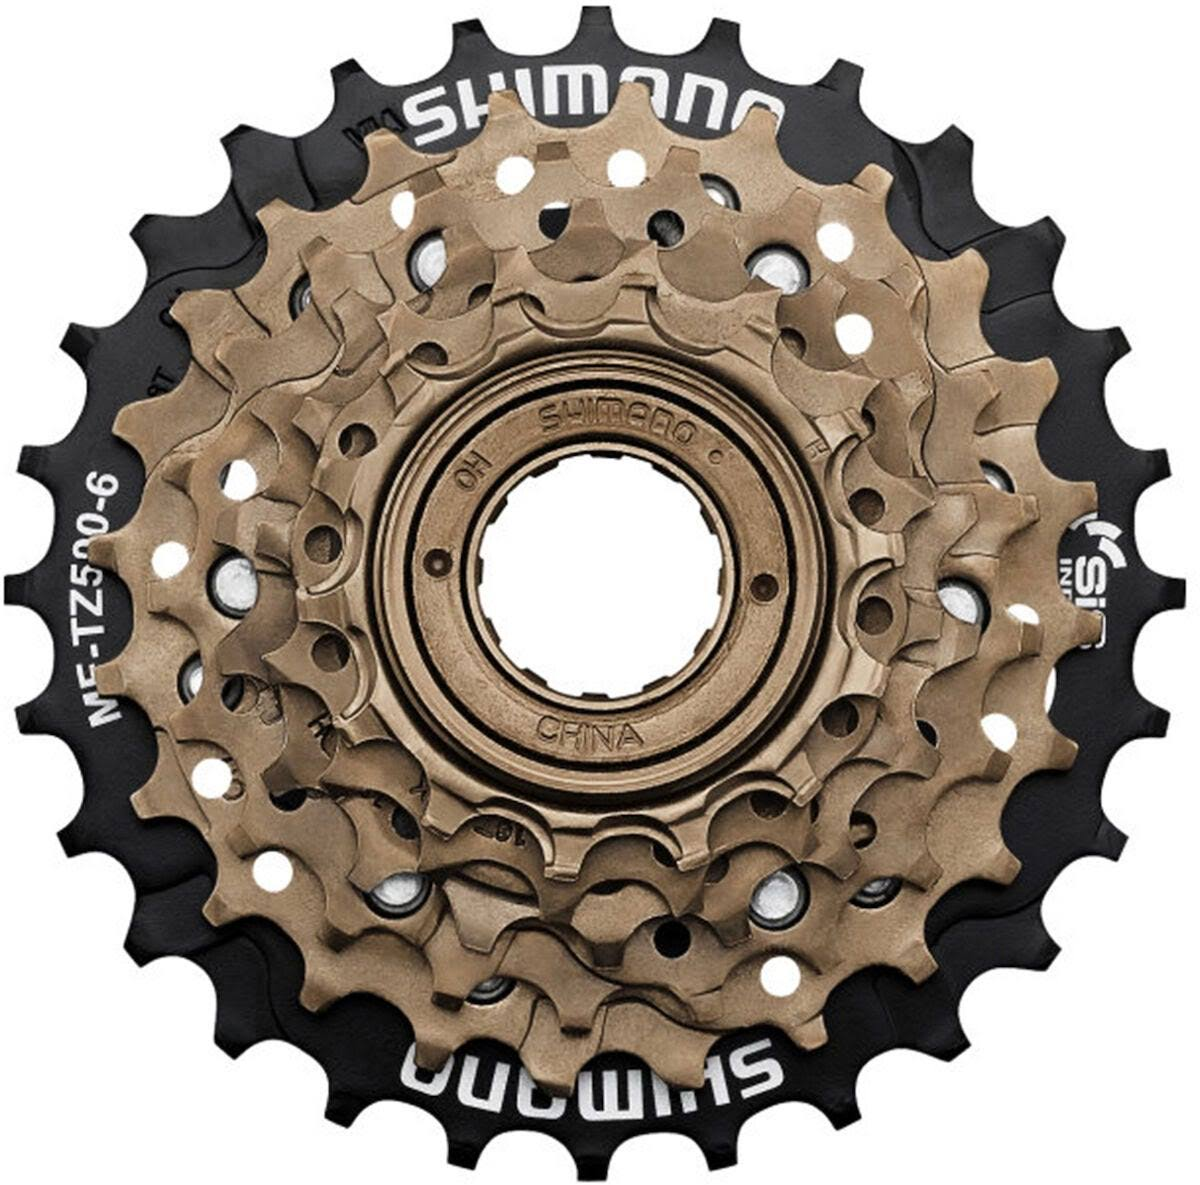 Shimano Multi Freewheel - Black and Gold, 14-28t